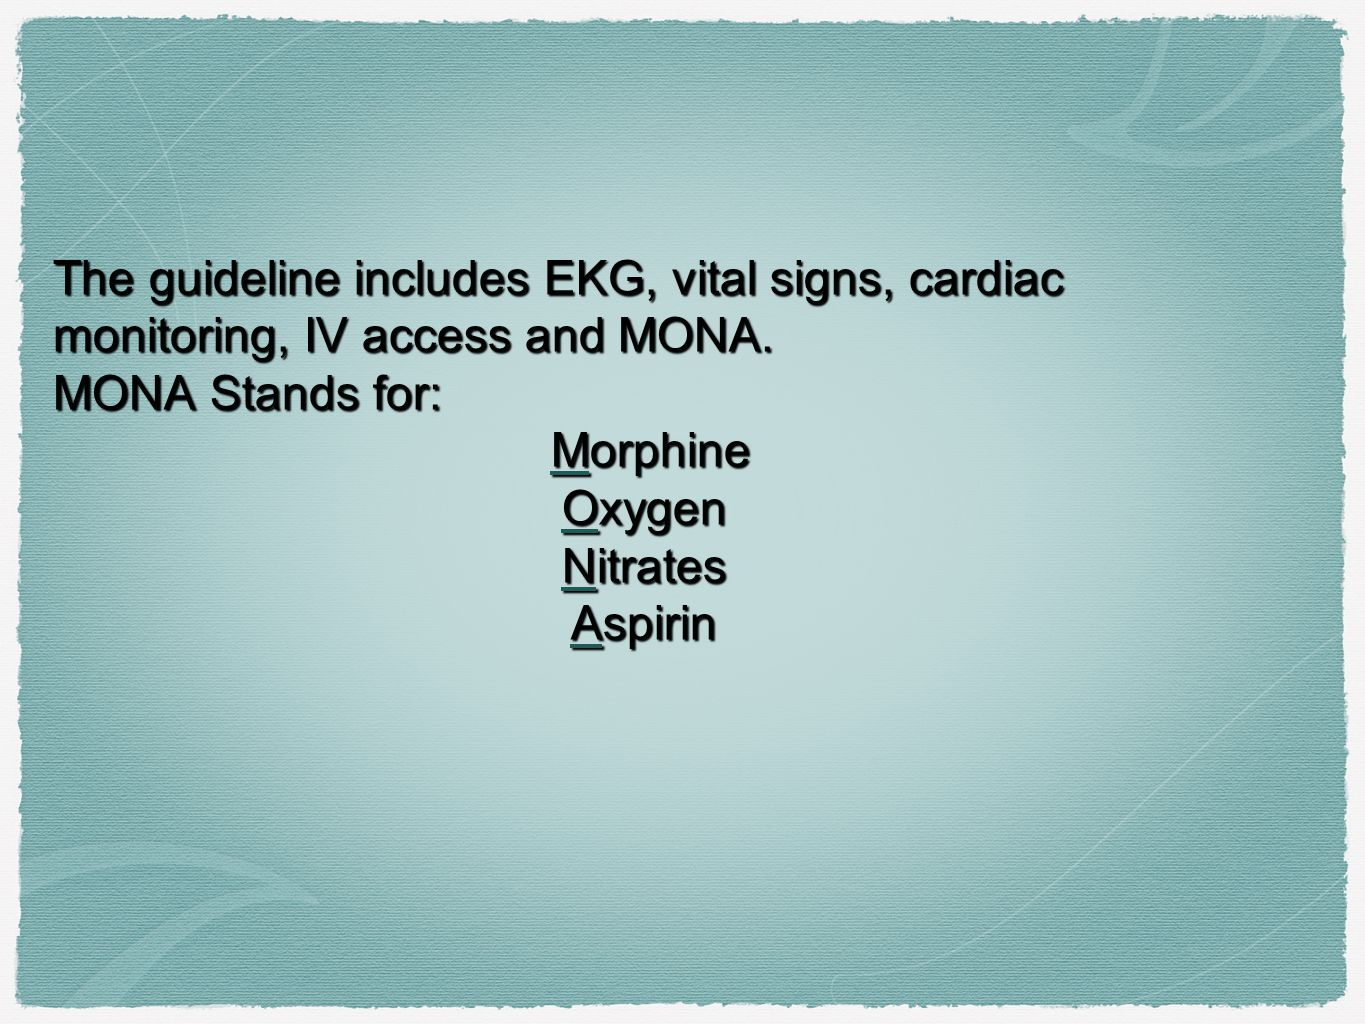 The guideline includes EKG, vital signs, cardiac monitoring, IV access and MONA.